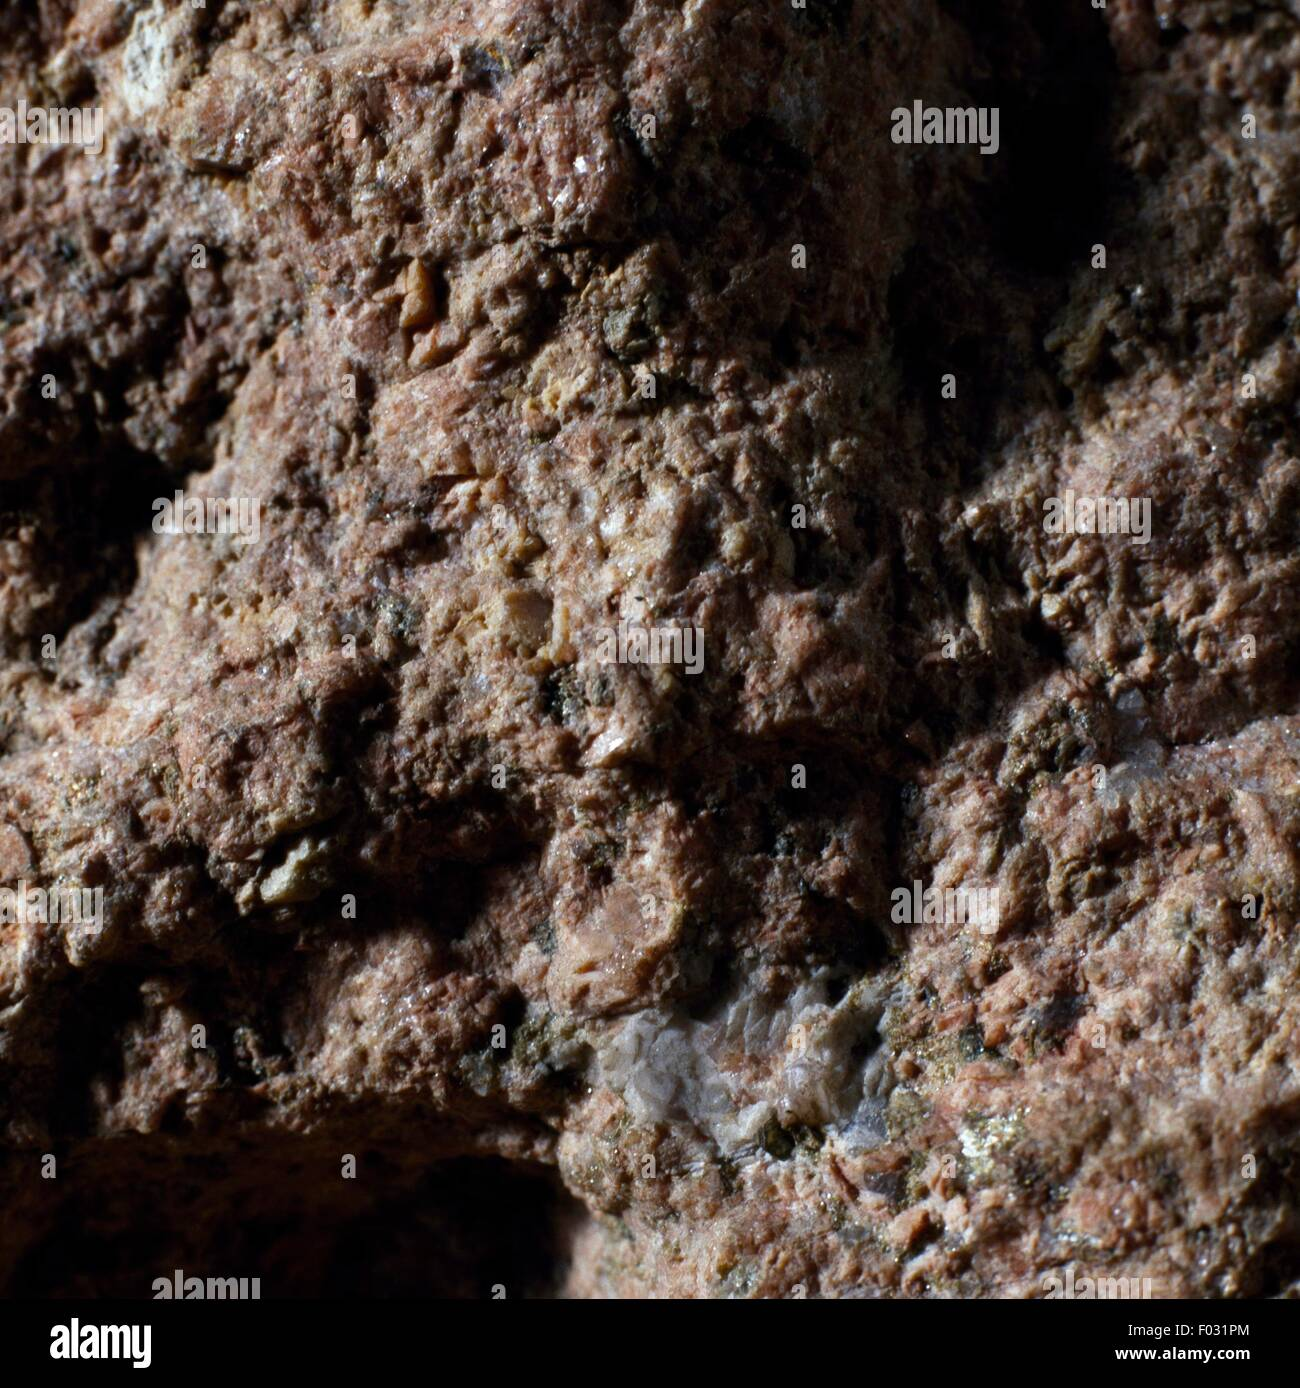 Granophyre, fine-grained igneous rock, from Valganna, Lombardy, Italy. - Stock Image